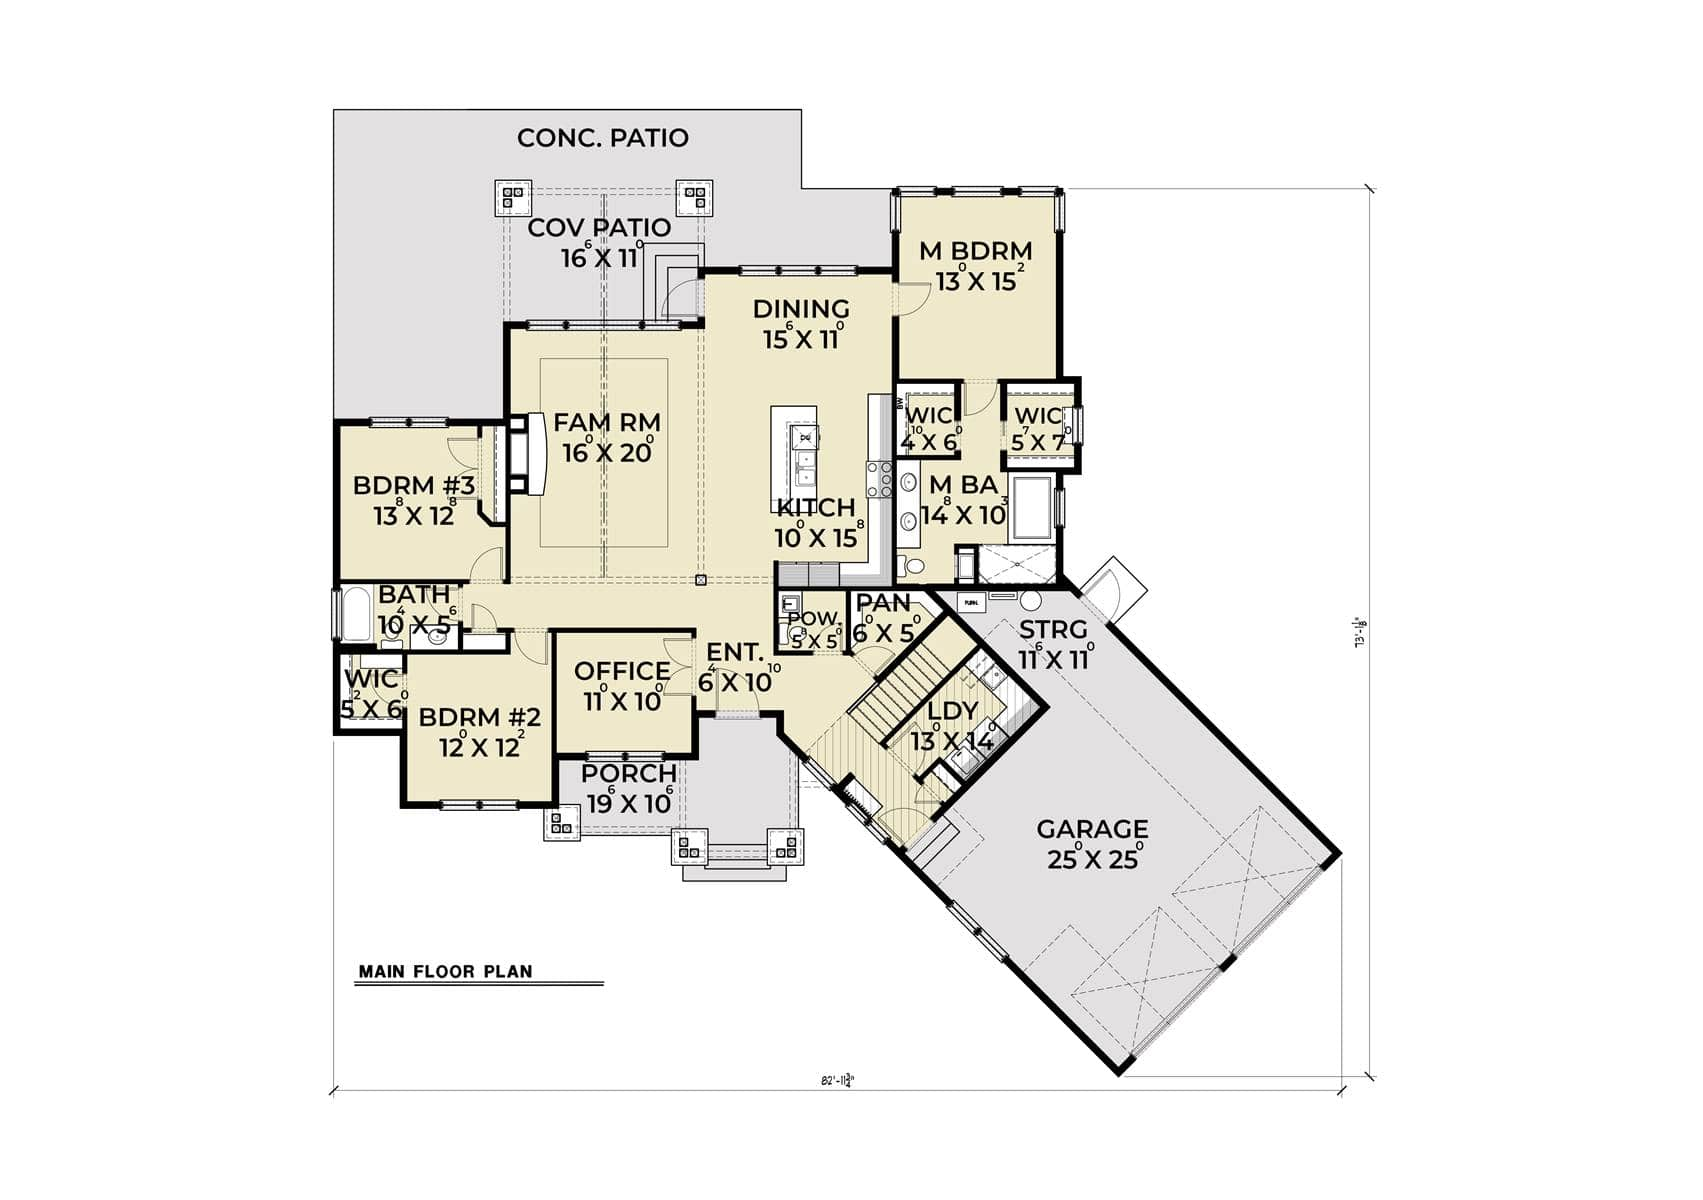 Entire floor plan of a single-story 3-bedroom Northwest 614 craftsman style home with family room, shared dining and kitchen, office, laundry, covered patios, and three bedrooms including the primary suite.